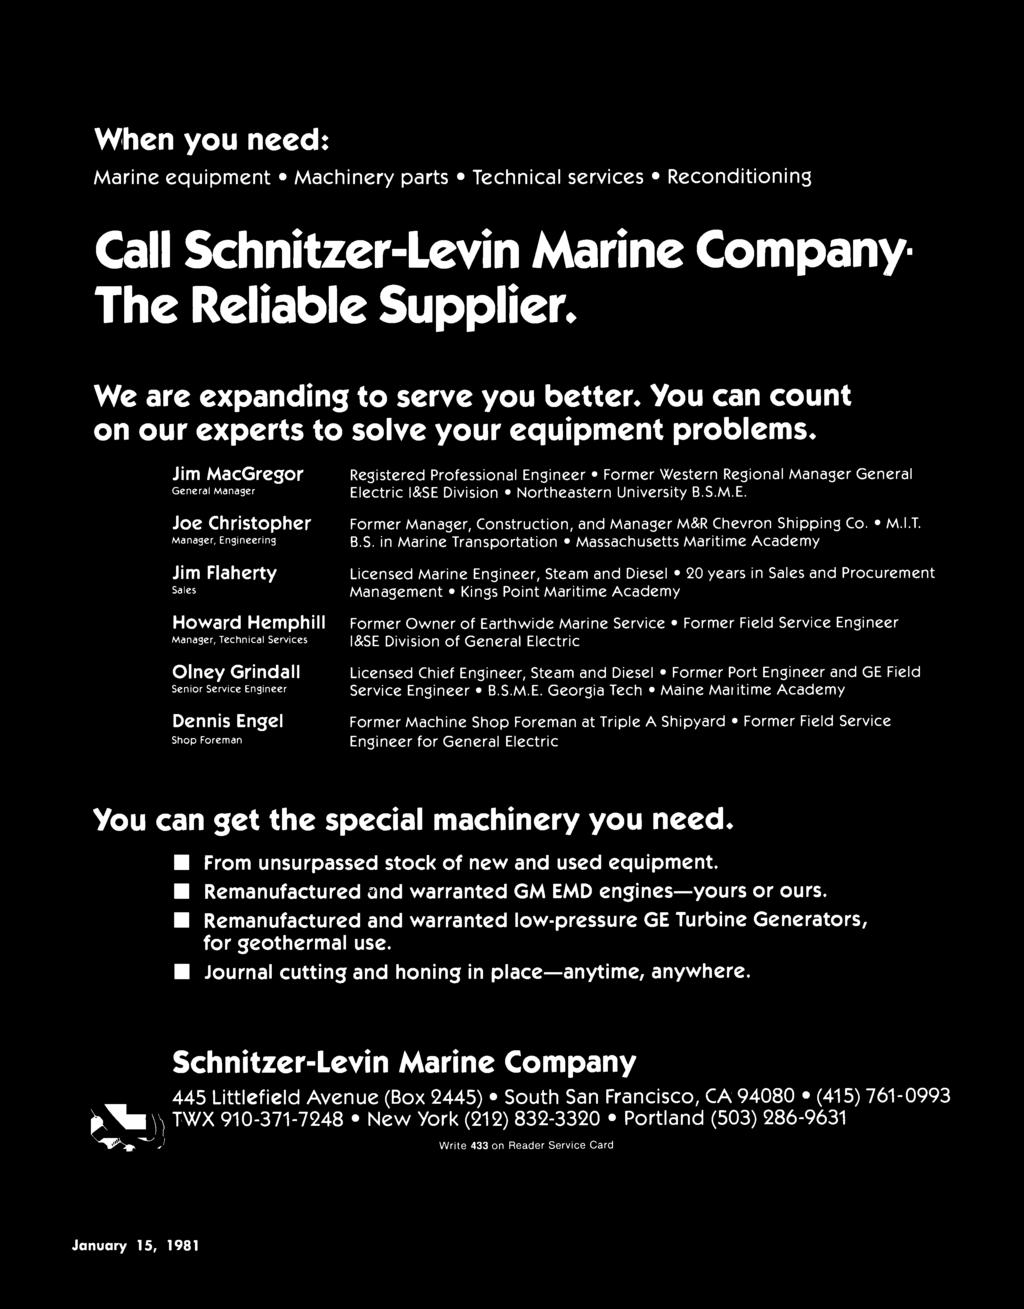 When you need: Marine equipment Machinery parts Technical services Reconditioning Call Schnitzer-Levin Marine Company- The Reliable Supplier. We are expanding to serve you better.